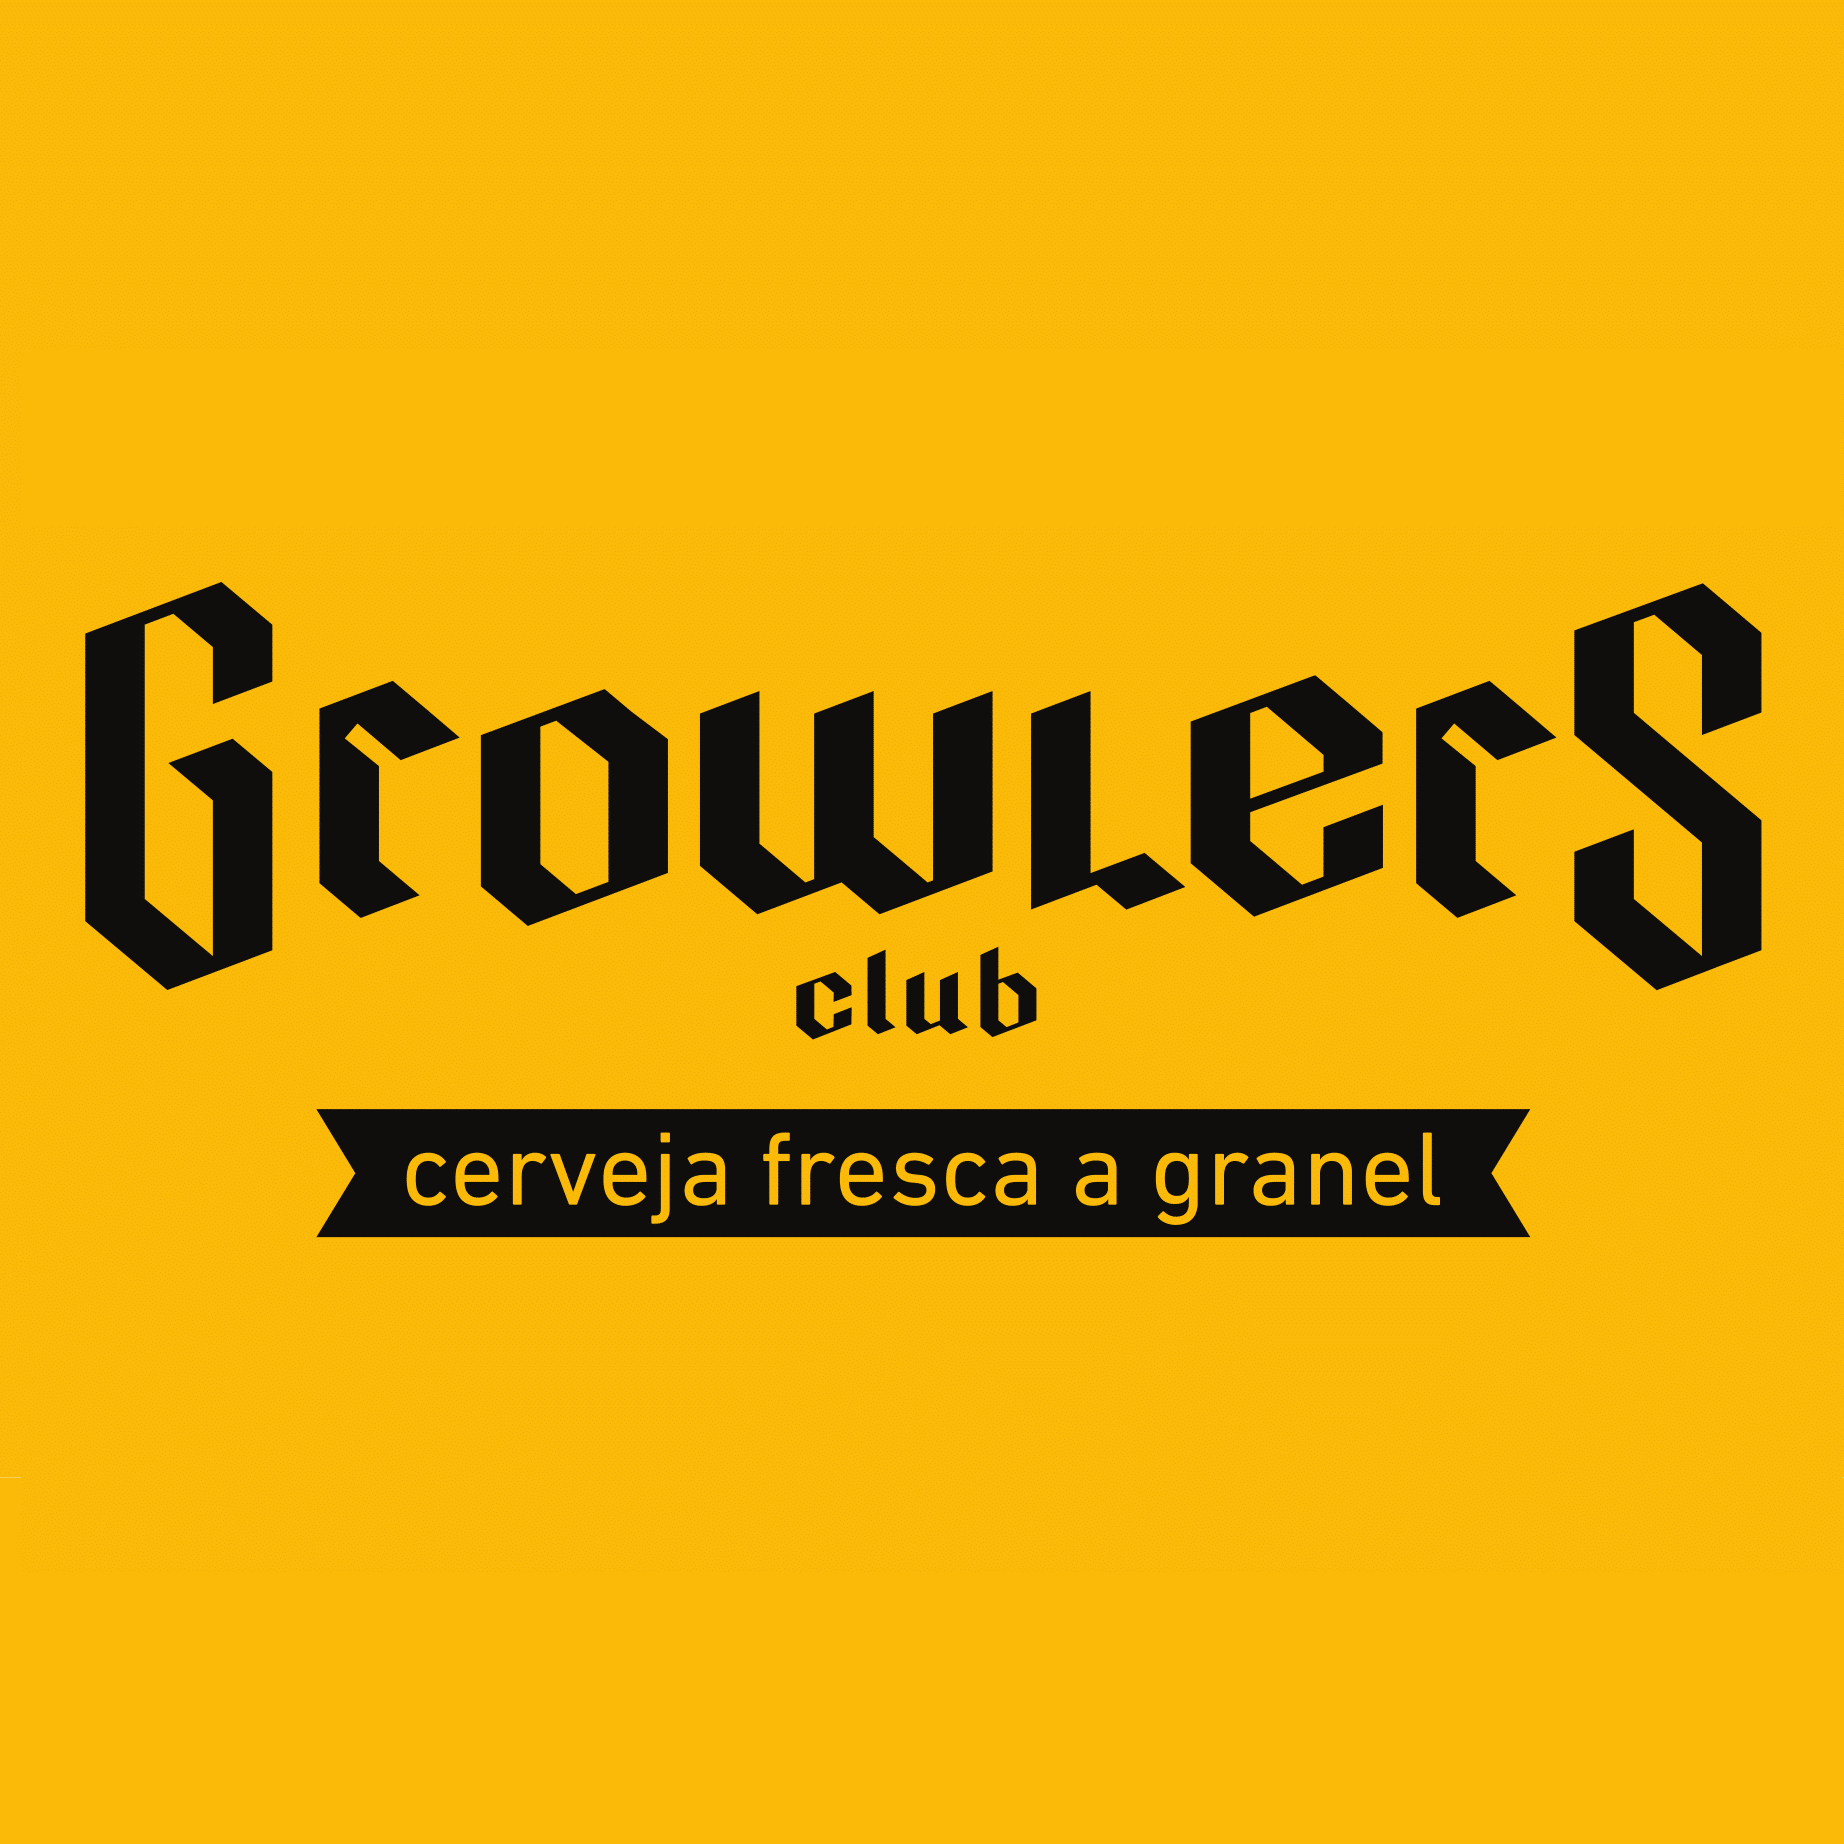 Growlers Club